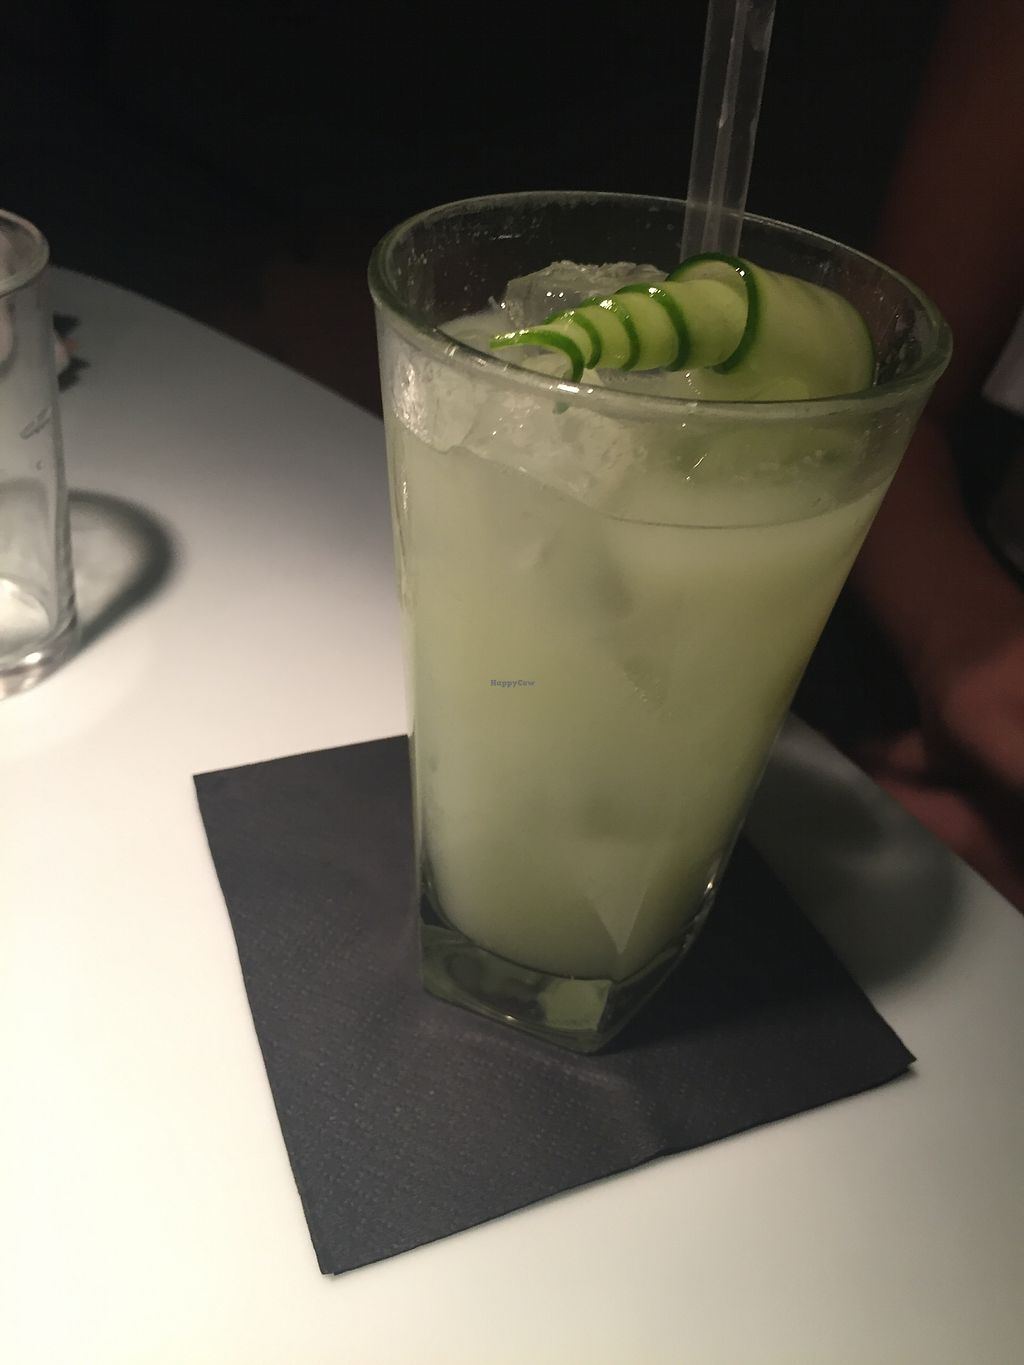 """Photo of Sticks n Sushi  by <a href=""""/members/profile/JohanneJeppesen"""">JohanneJeppesen</a> <br/>Cucumber cocktail <br/> January 5, 2018  - <a href='/contact/abuse/image/98535/343189'>Report</a>"""